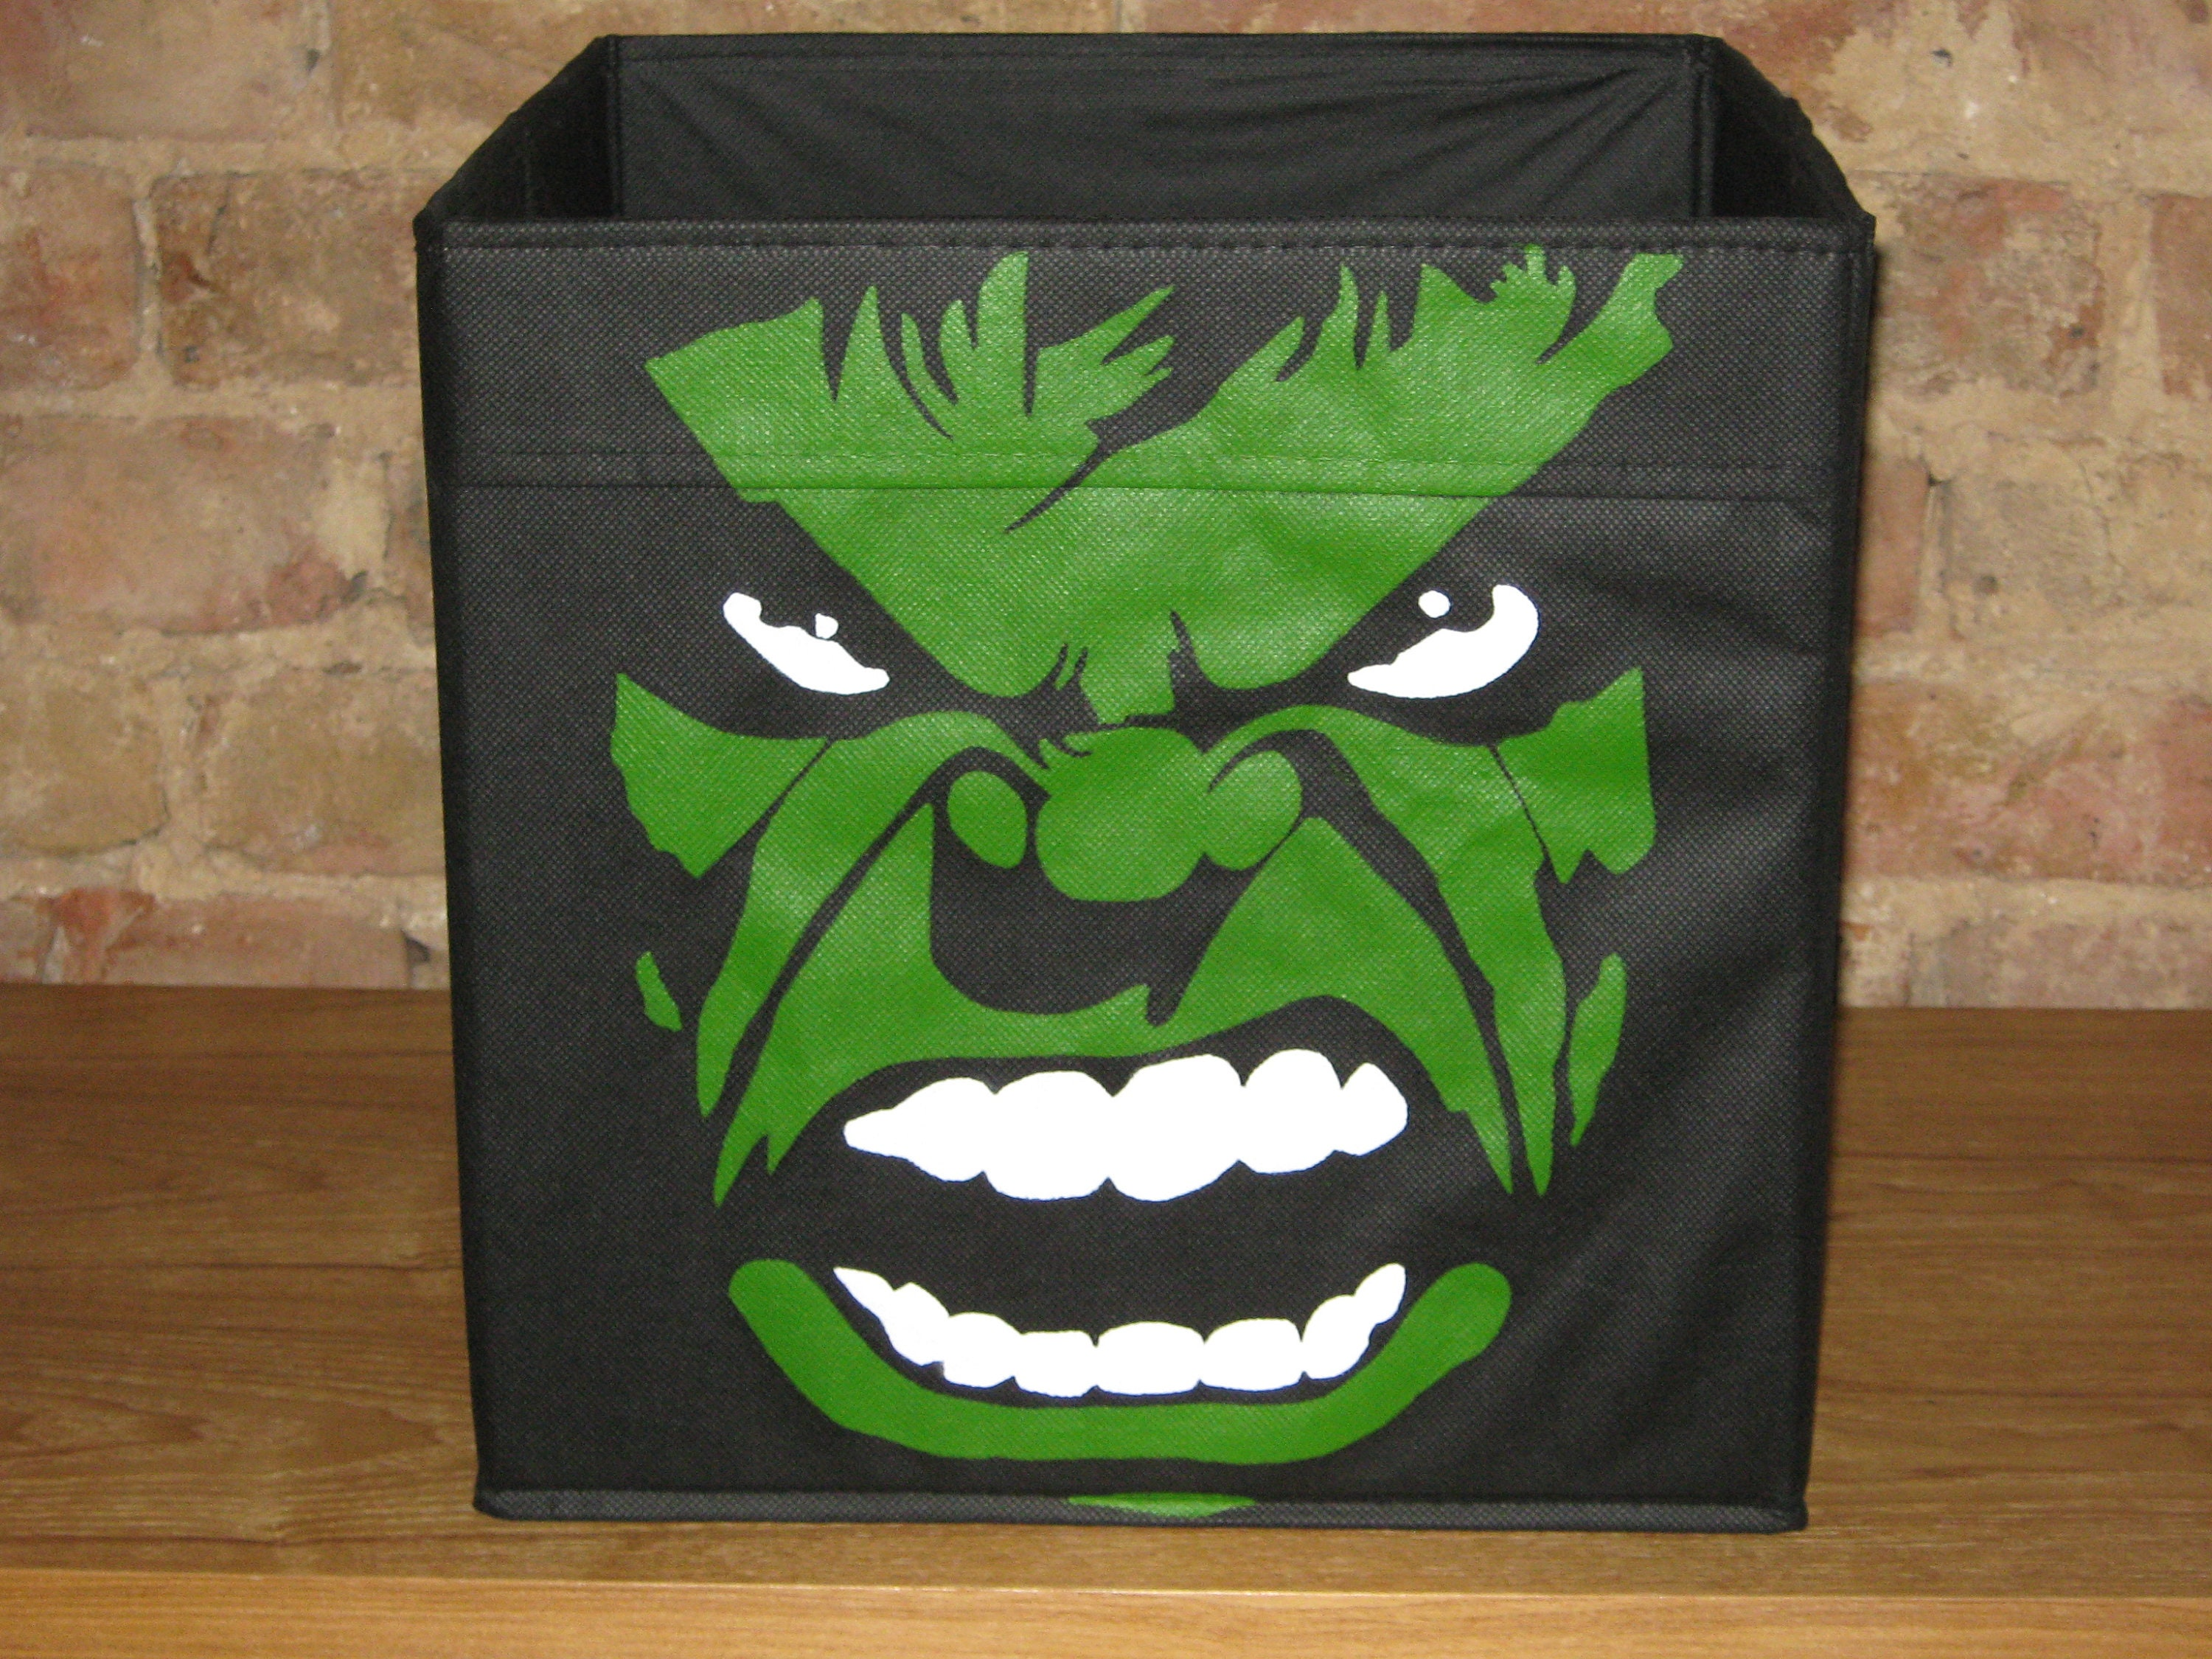 Incredible Hulk folding storage cube